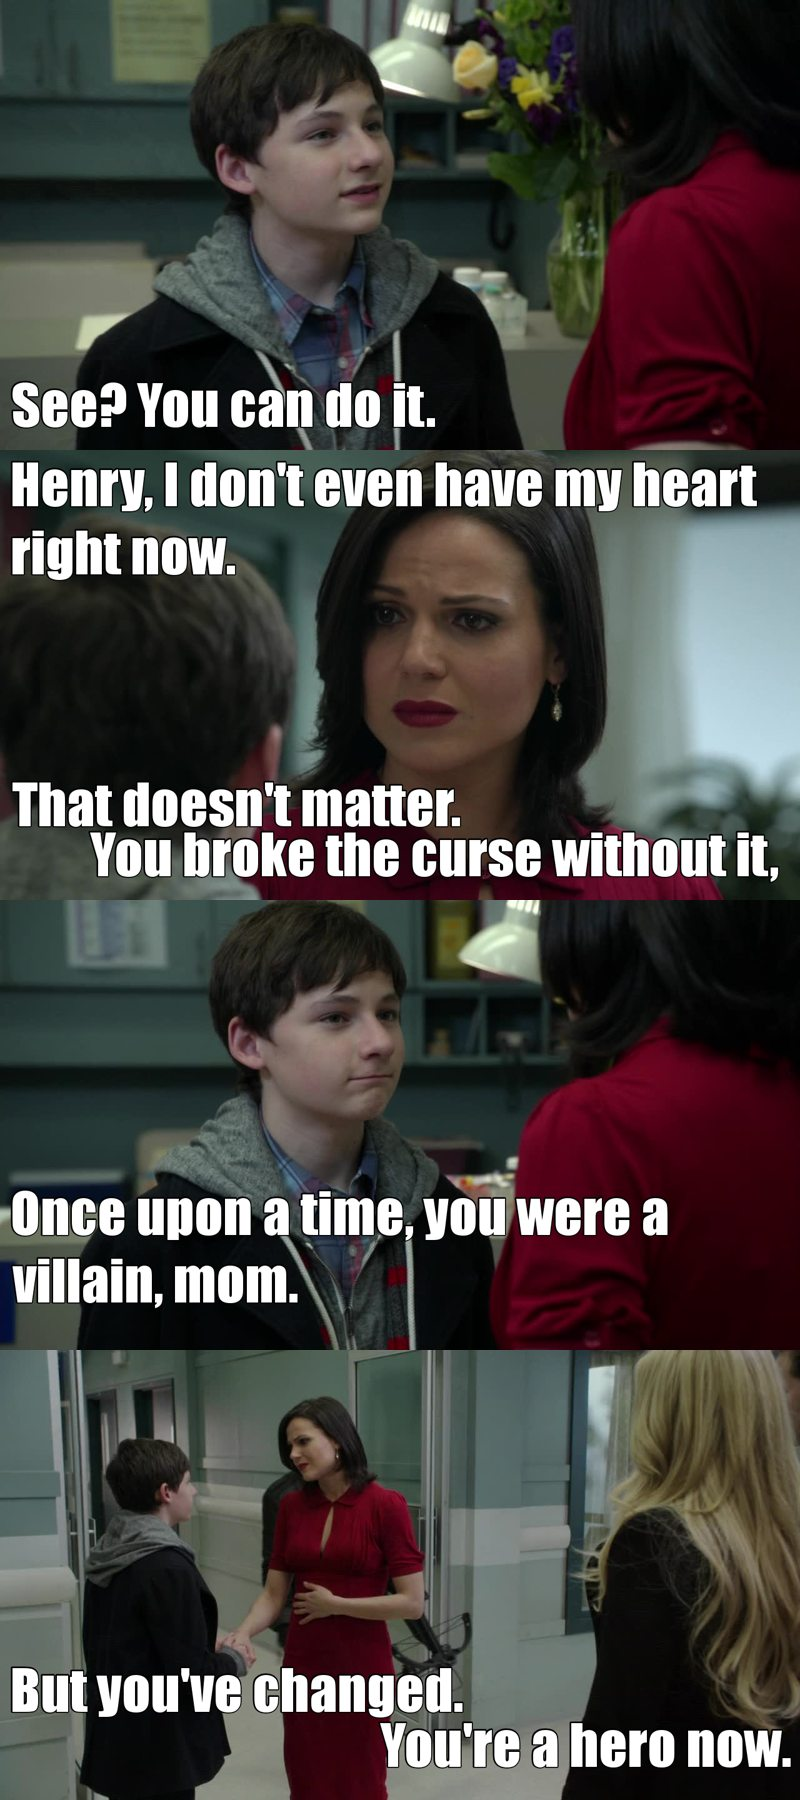 medium clean tv time once upon a time (2011) s03e20 kansas (tvshow time)